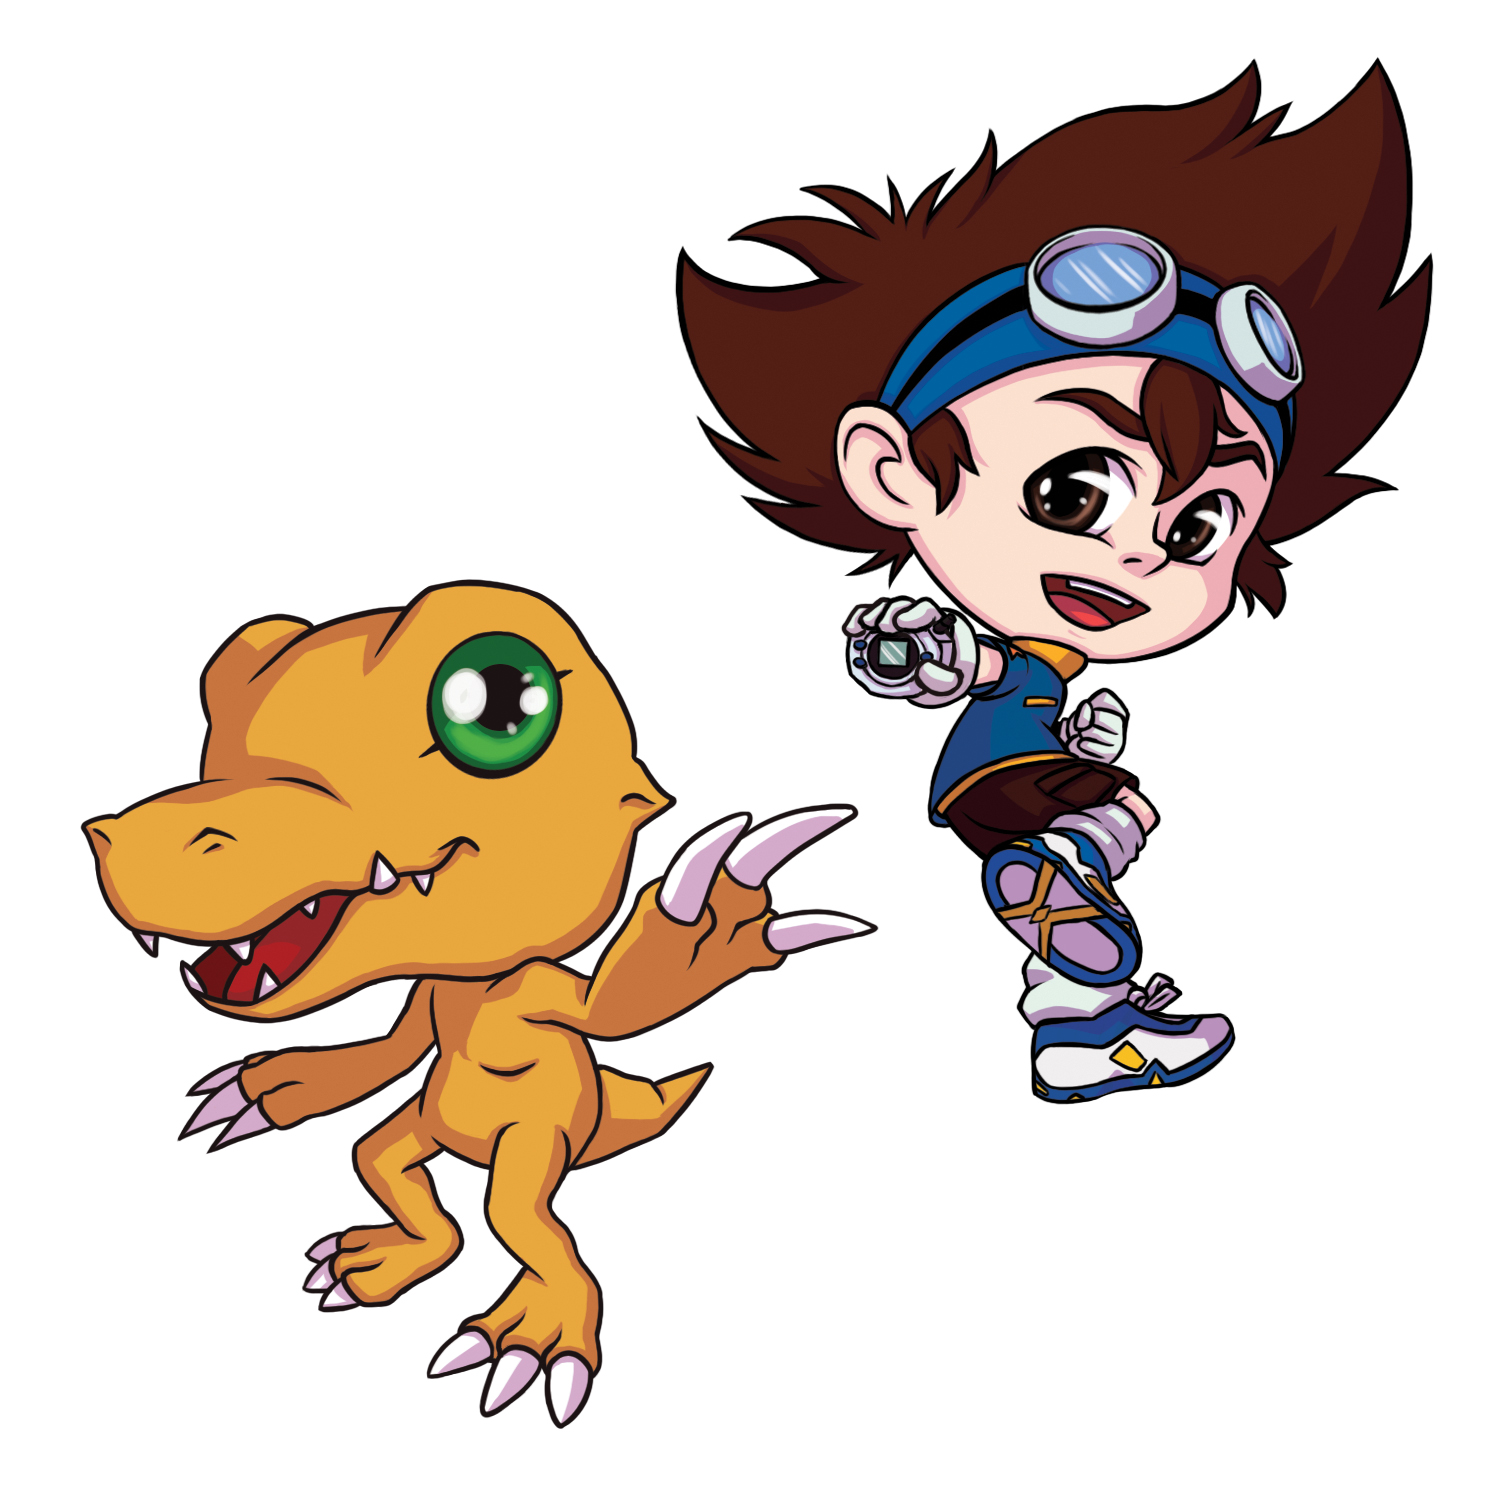 Digimon_Sticker.jpg